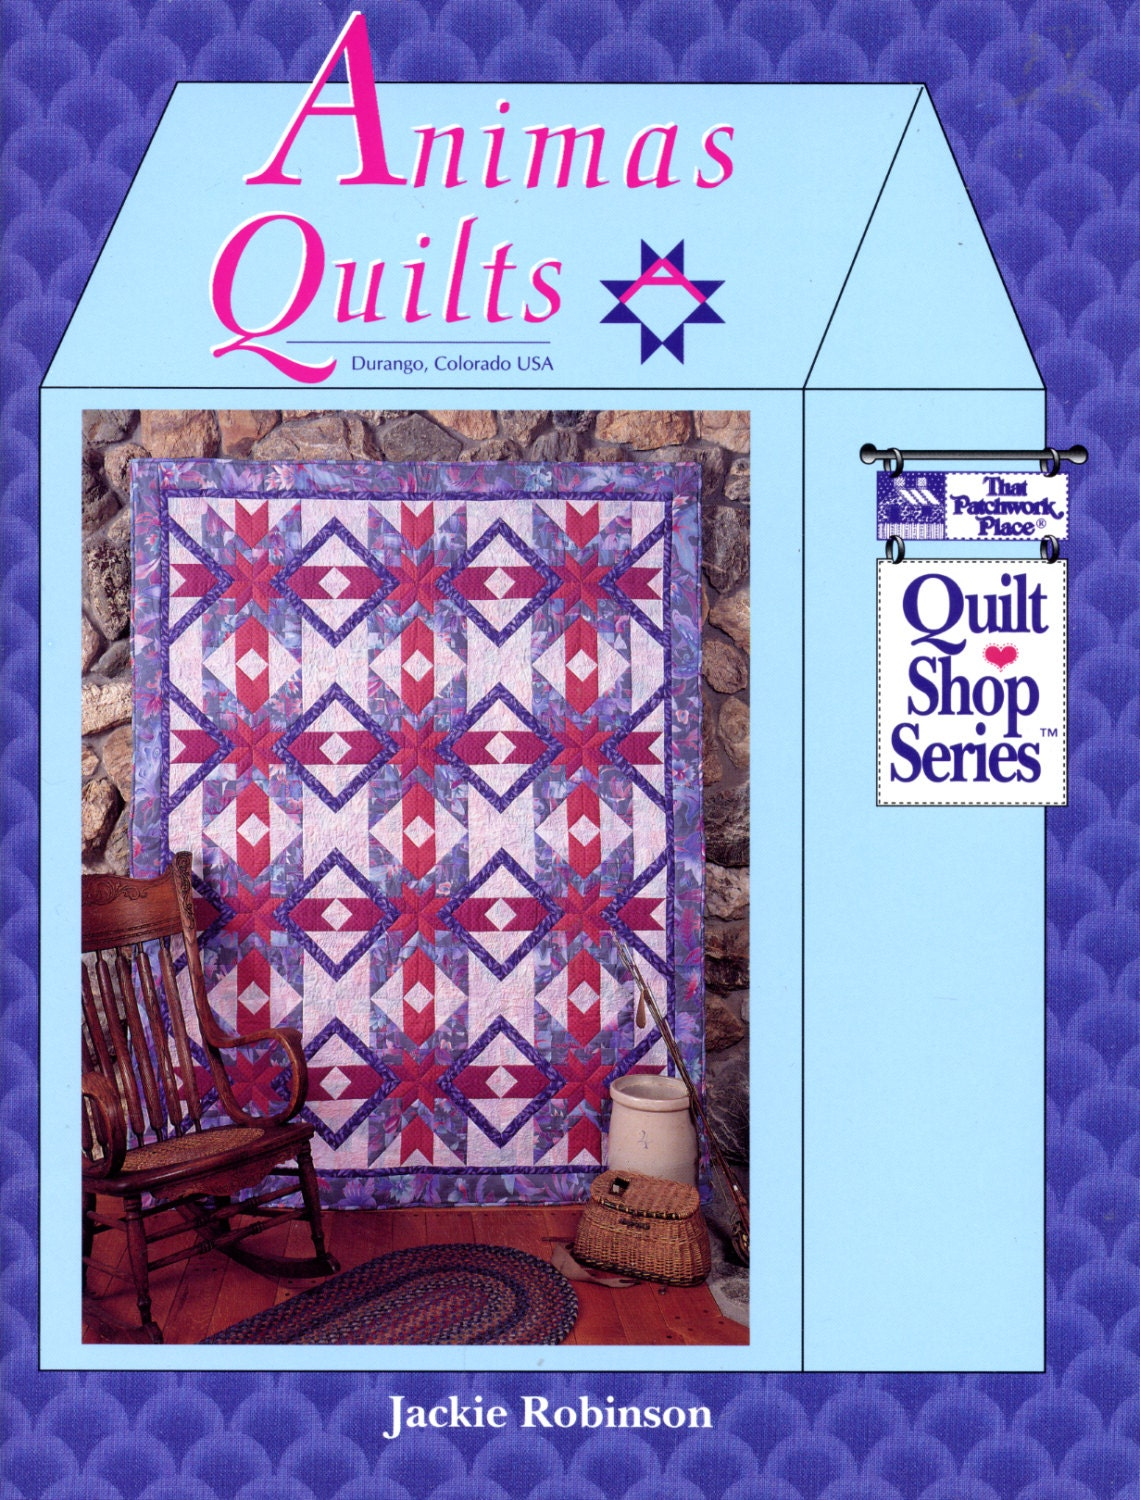 Animas Quilts by Jackie Robinson That Patchwork Place Quilt : that quilt shop - Adamdwight.com